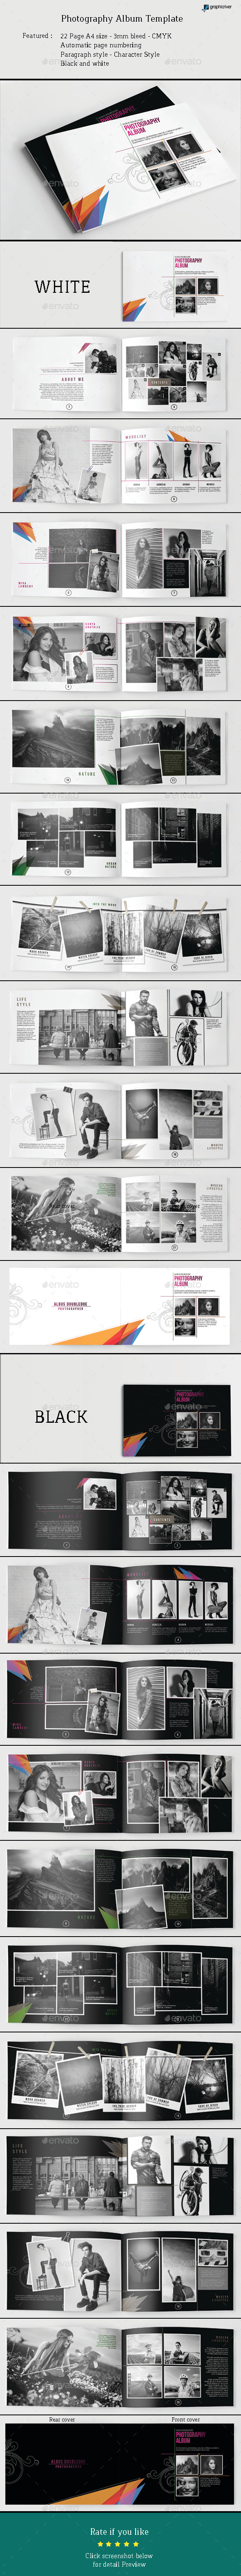 Photography Album Template - Photo Albums Print Templates